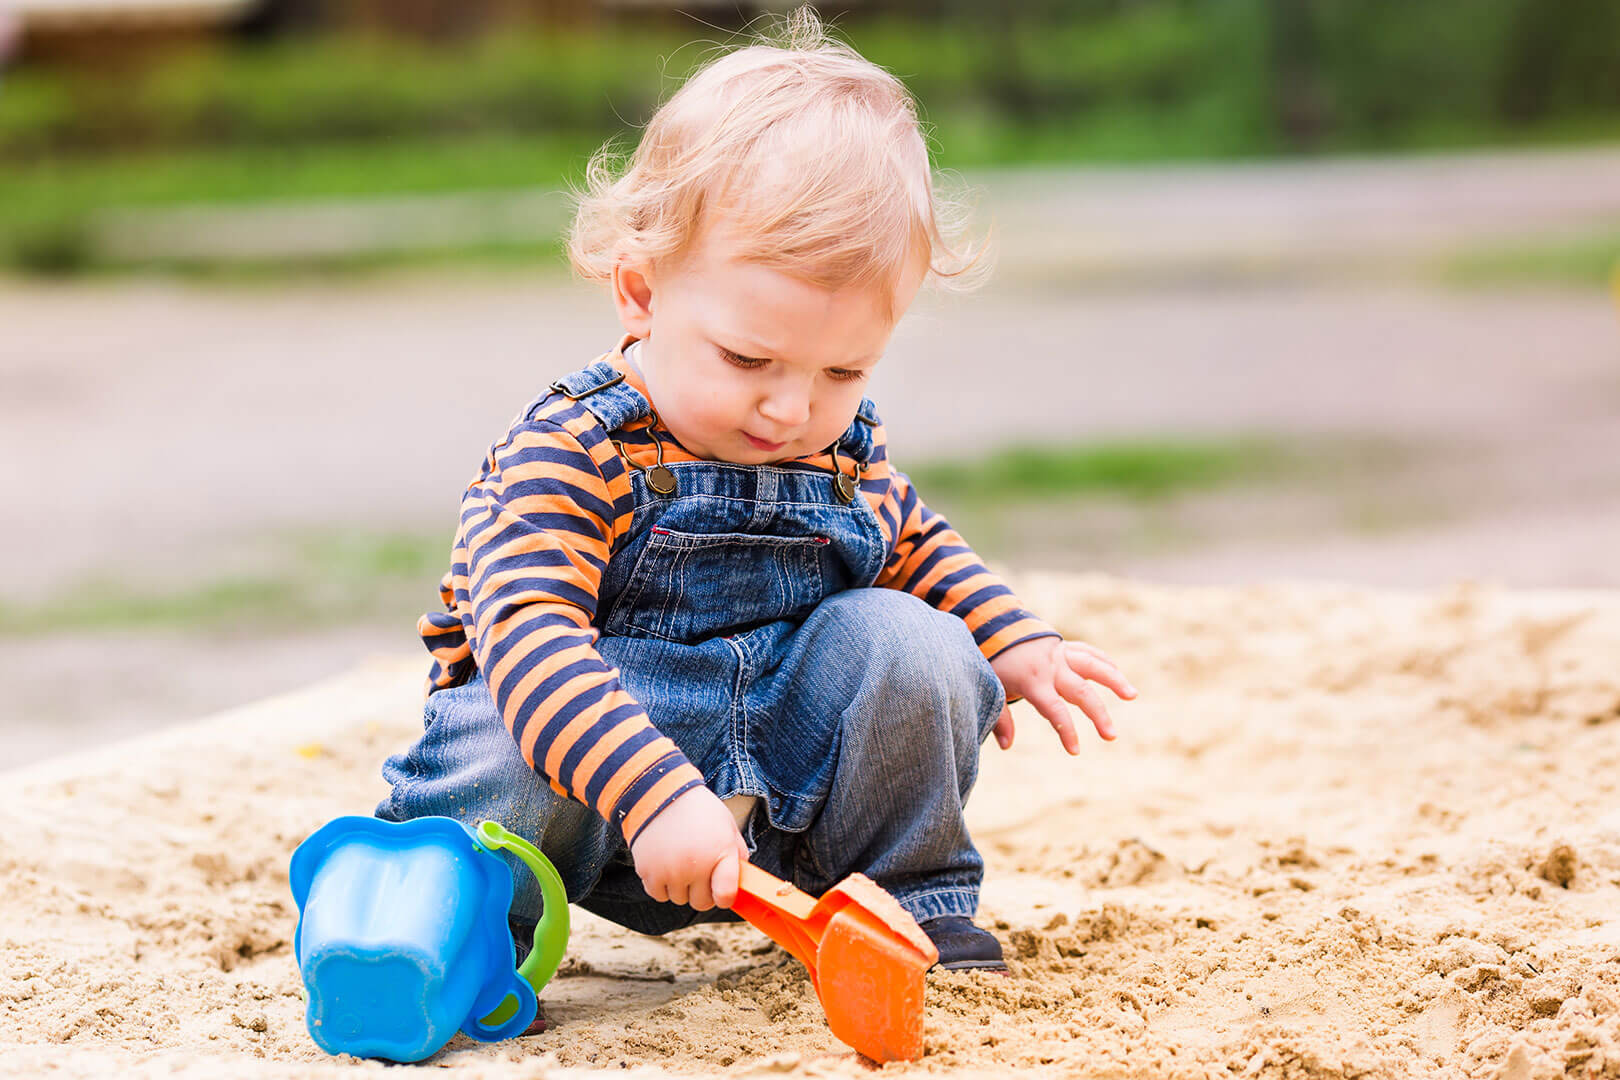 Baby playing in sandpit